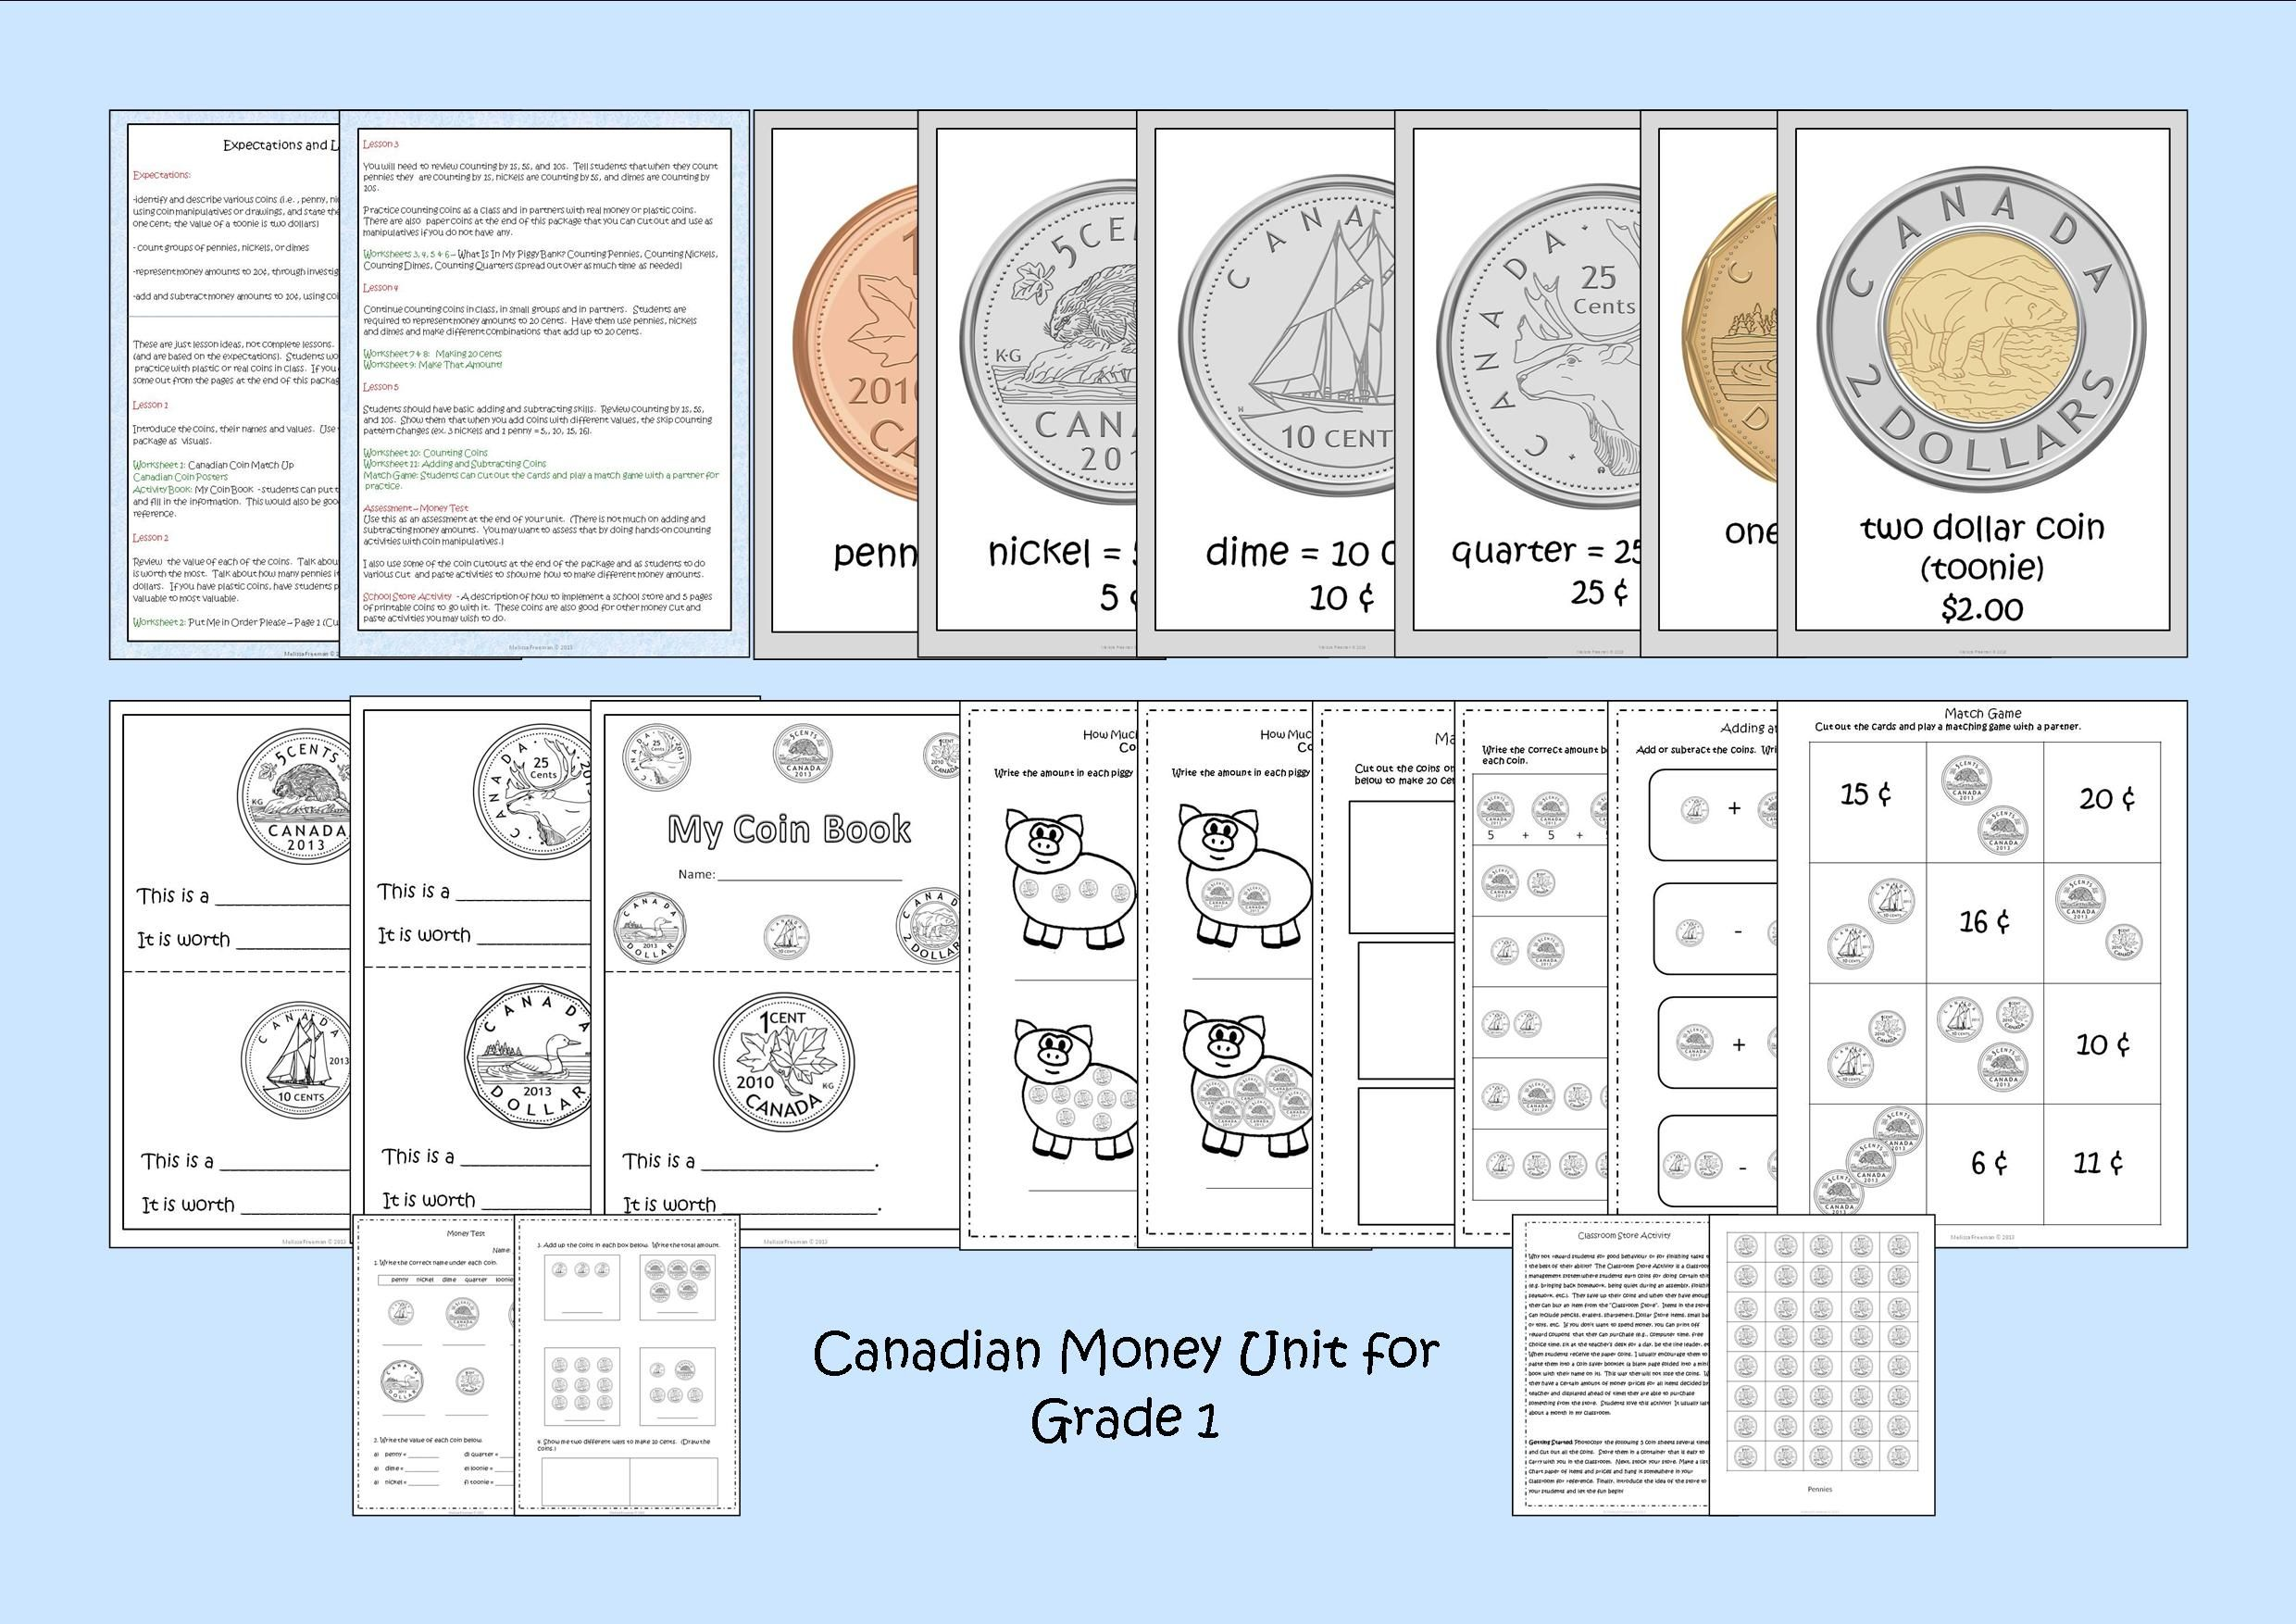 Canadian Money Unit For Grade 1 Ontario Curriculum